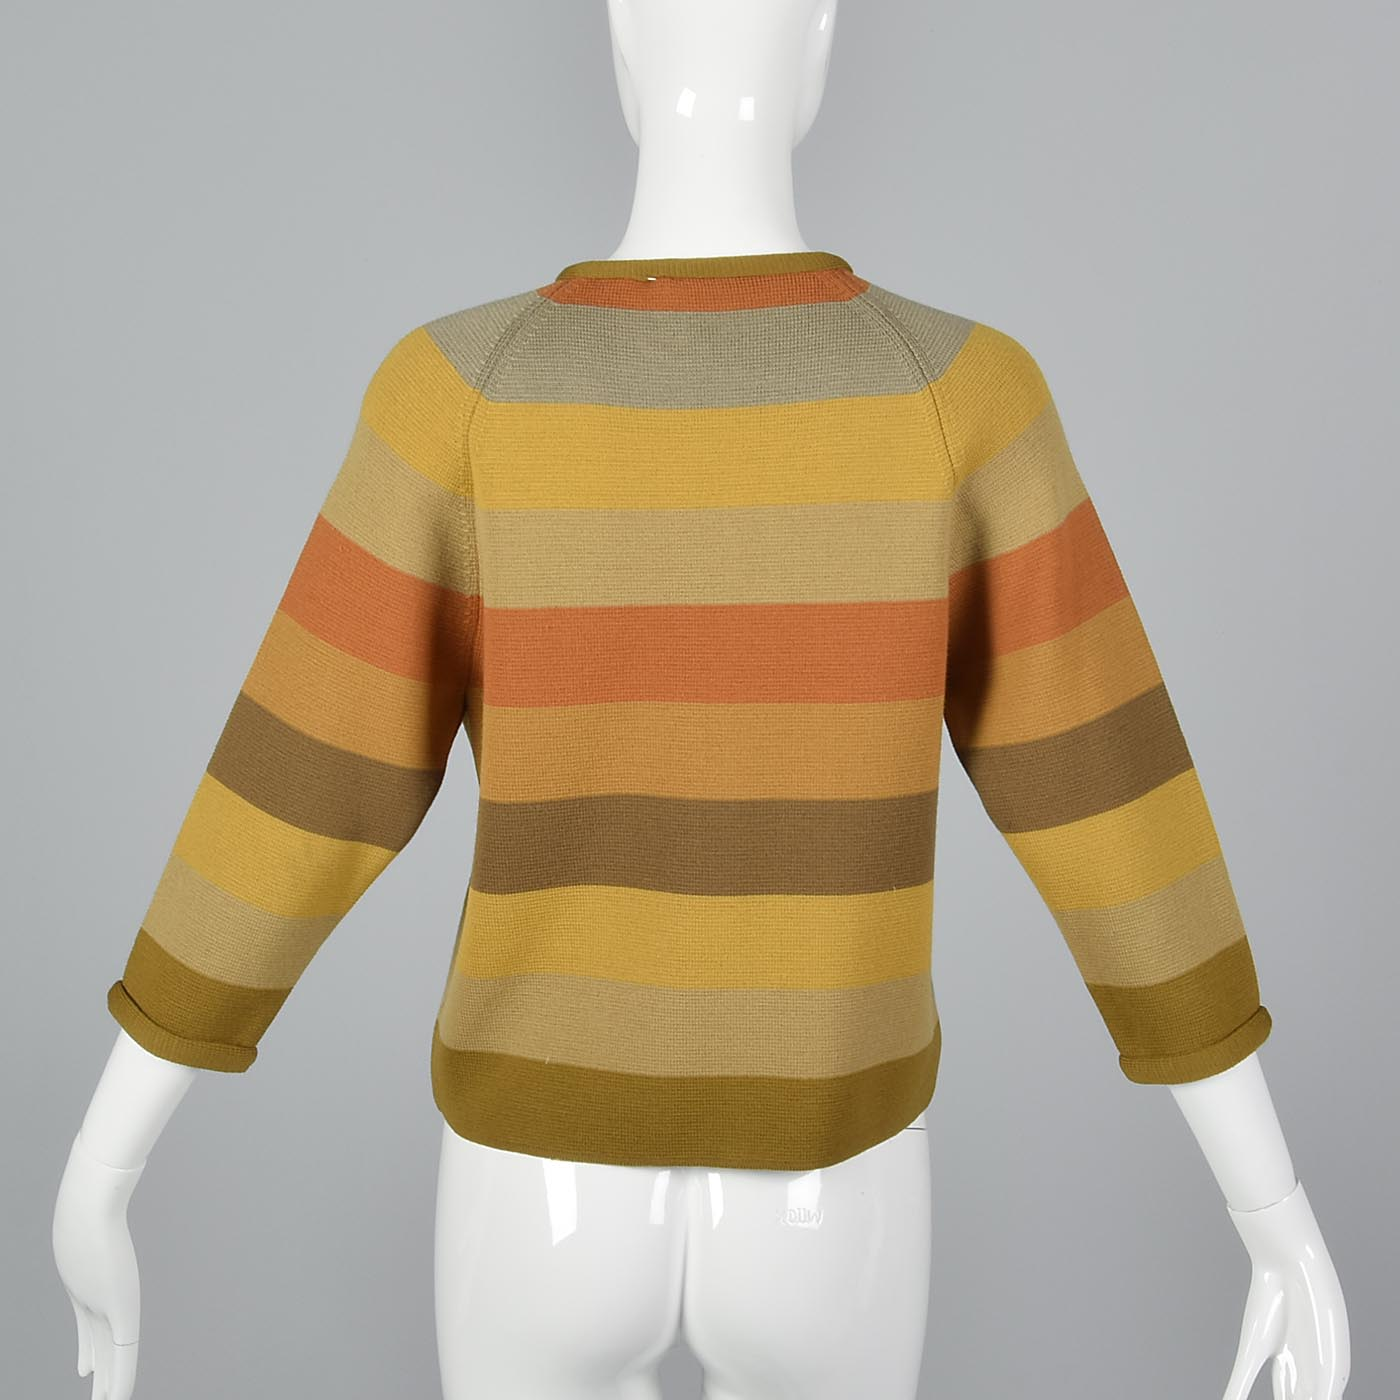 1960s Cropped Sweater with Gold and Orange Stripes